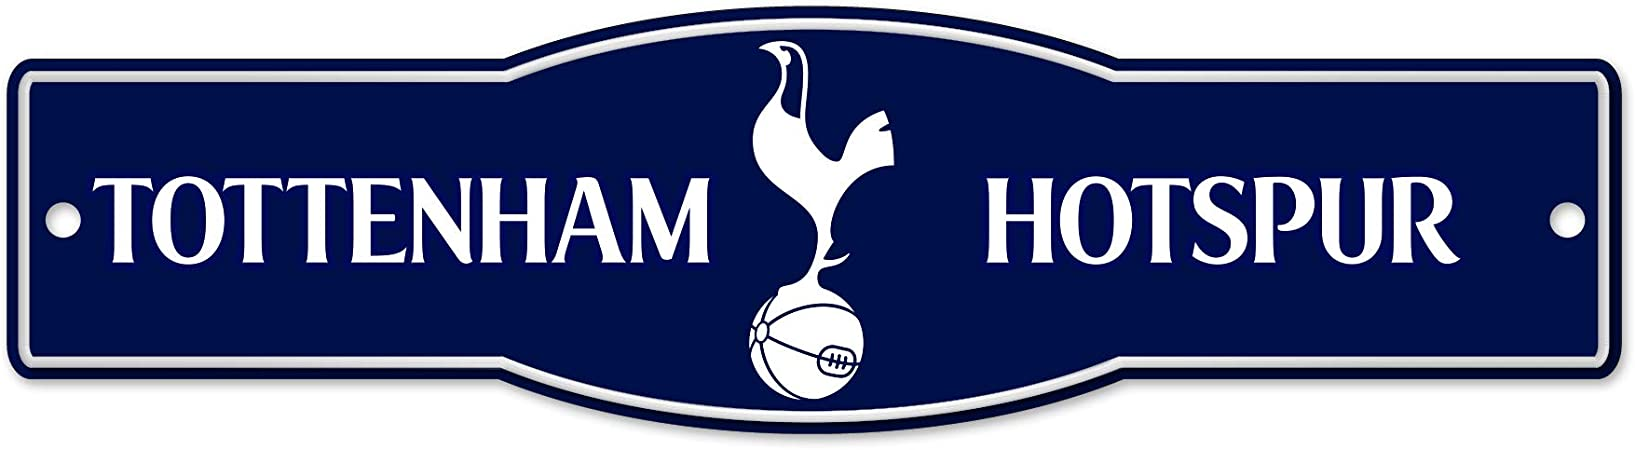 Amazon Com Wincraft Tottenham Hotspur F C 4 X 17 Street Sign Premier League Sports Outdoors